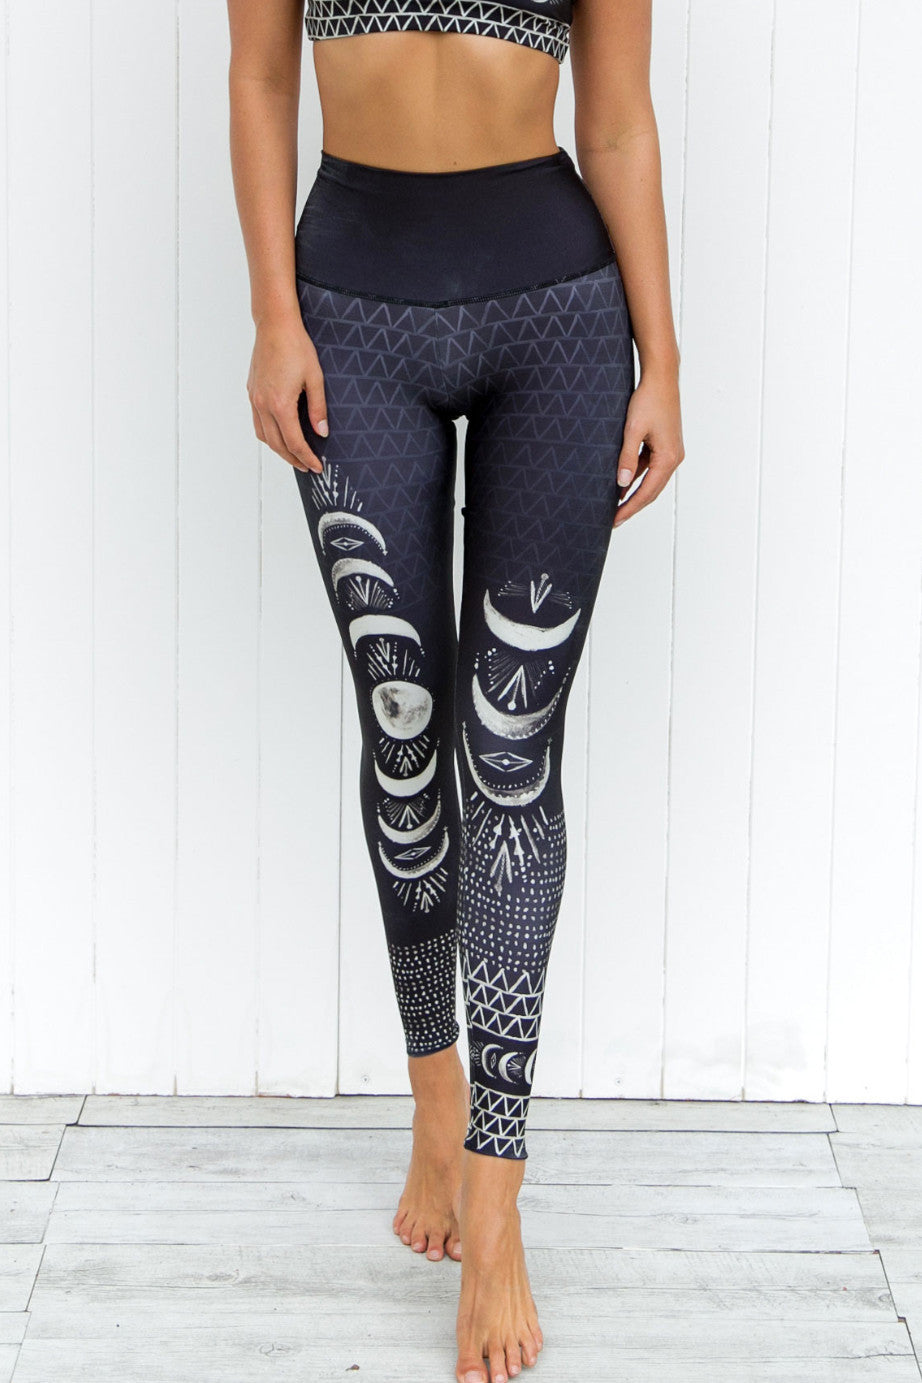 Las Lunas Leggings - PURE DASH